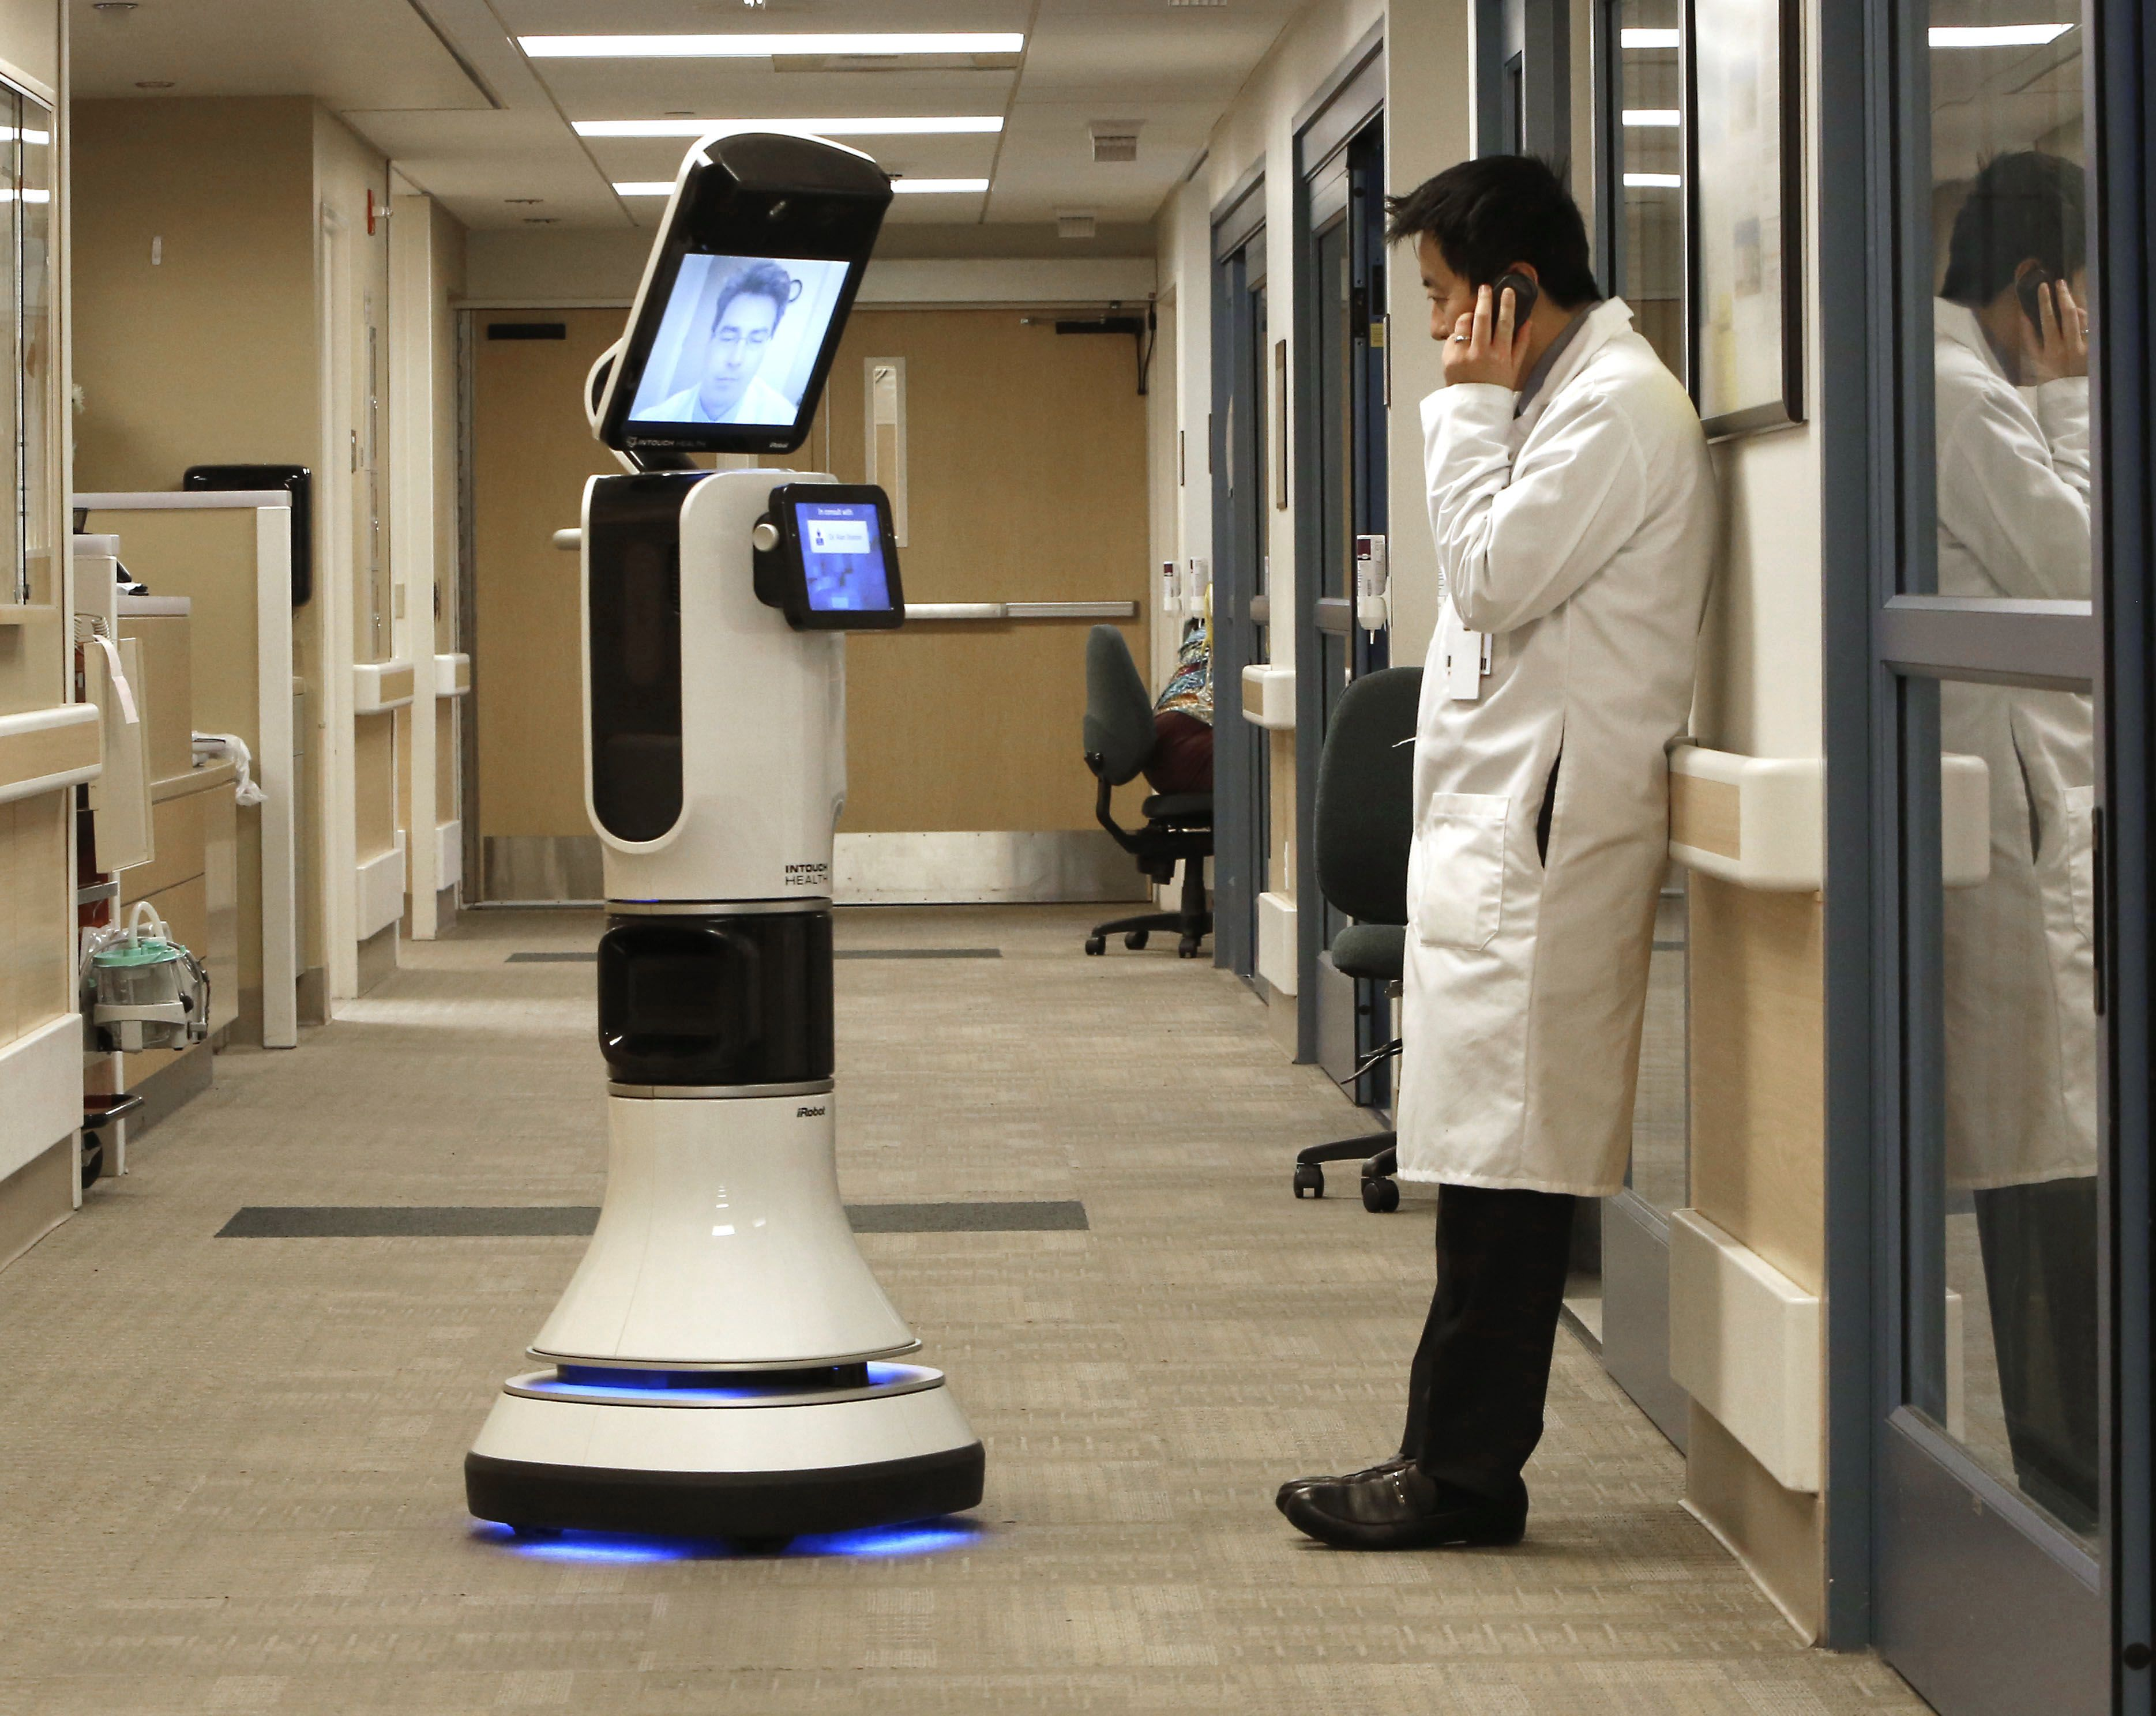 Top Trends And Technologies Shaping Medicine in 2015! [The